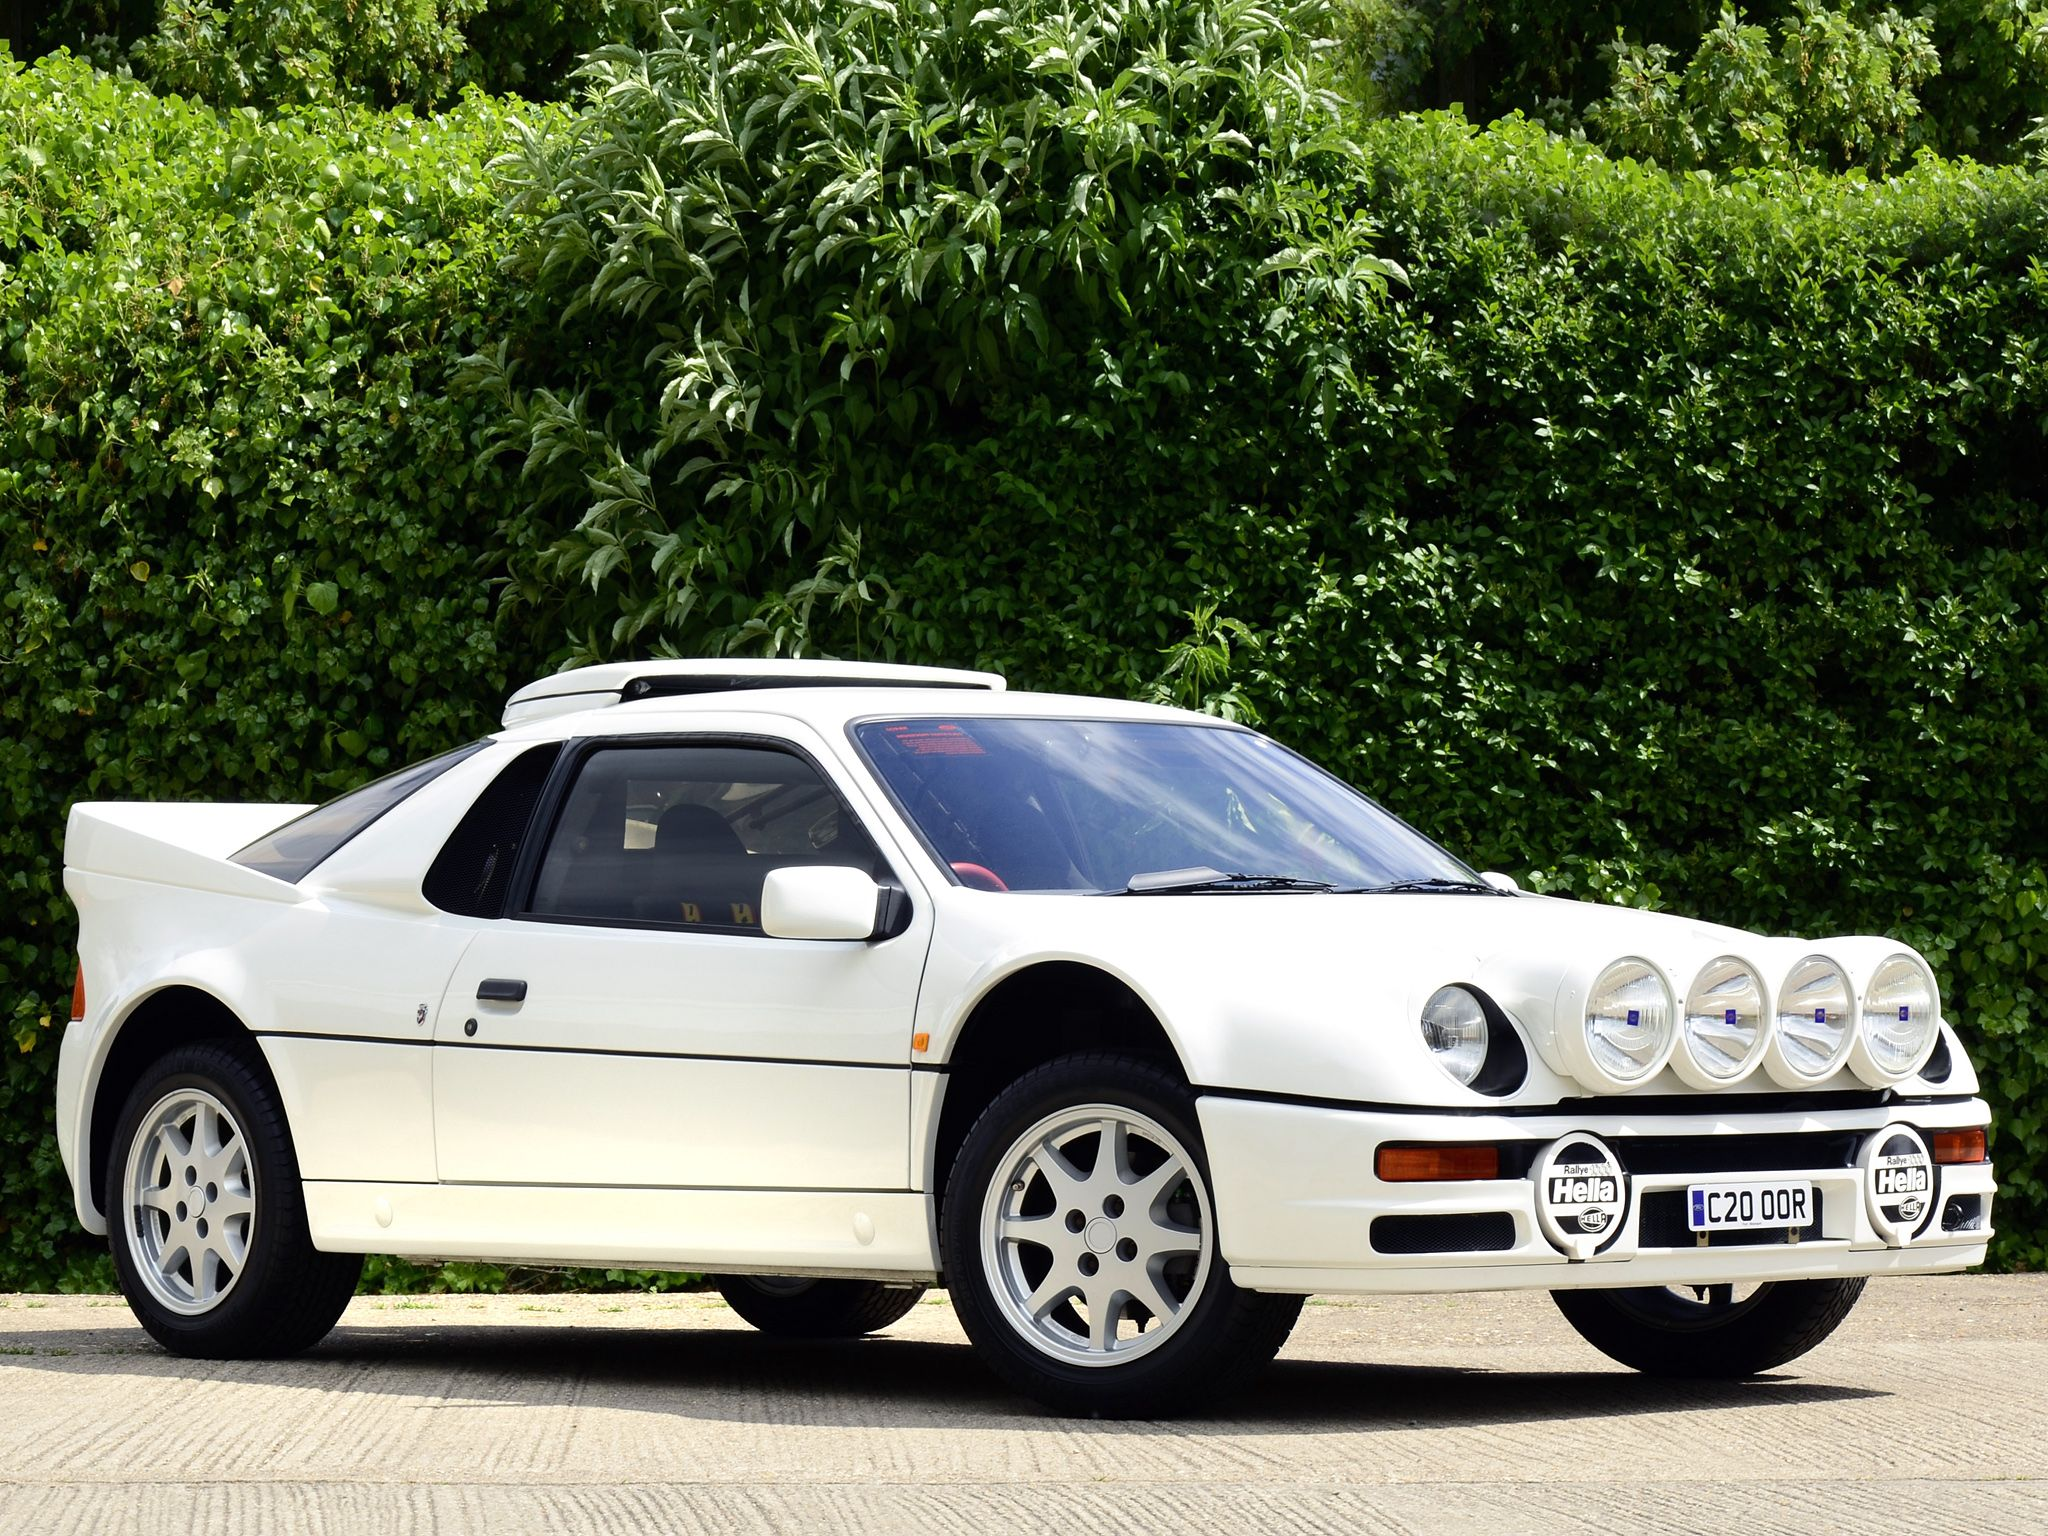 Ford Rs200 Car Ford Cars Cool Cars